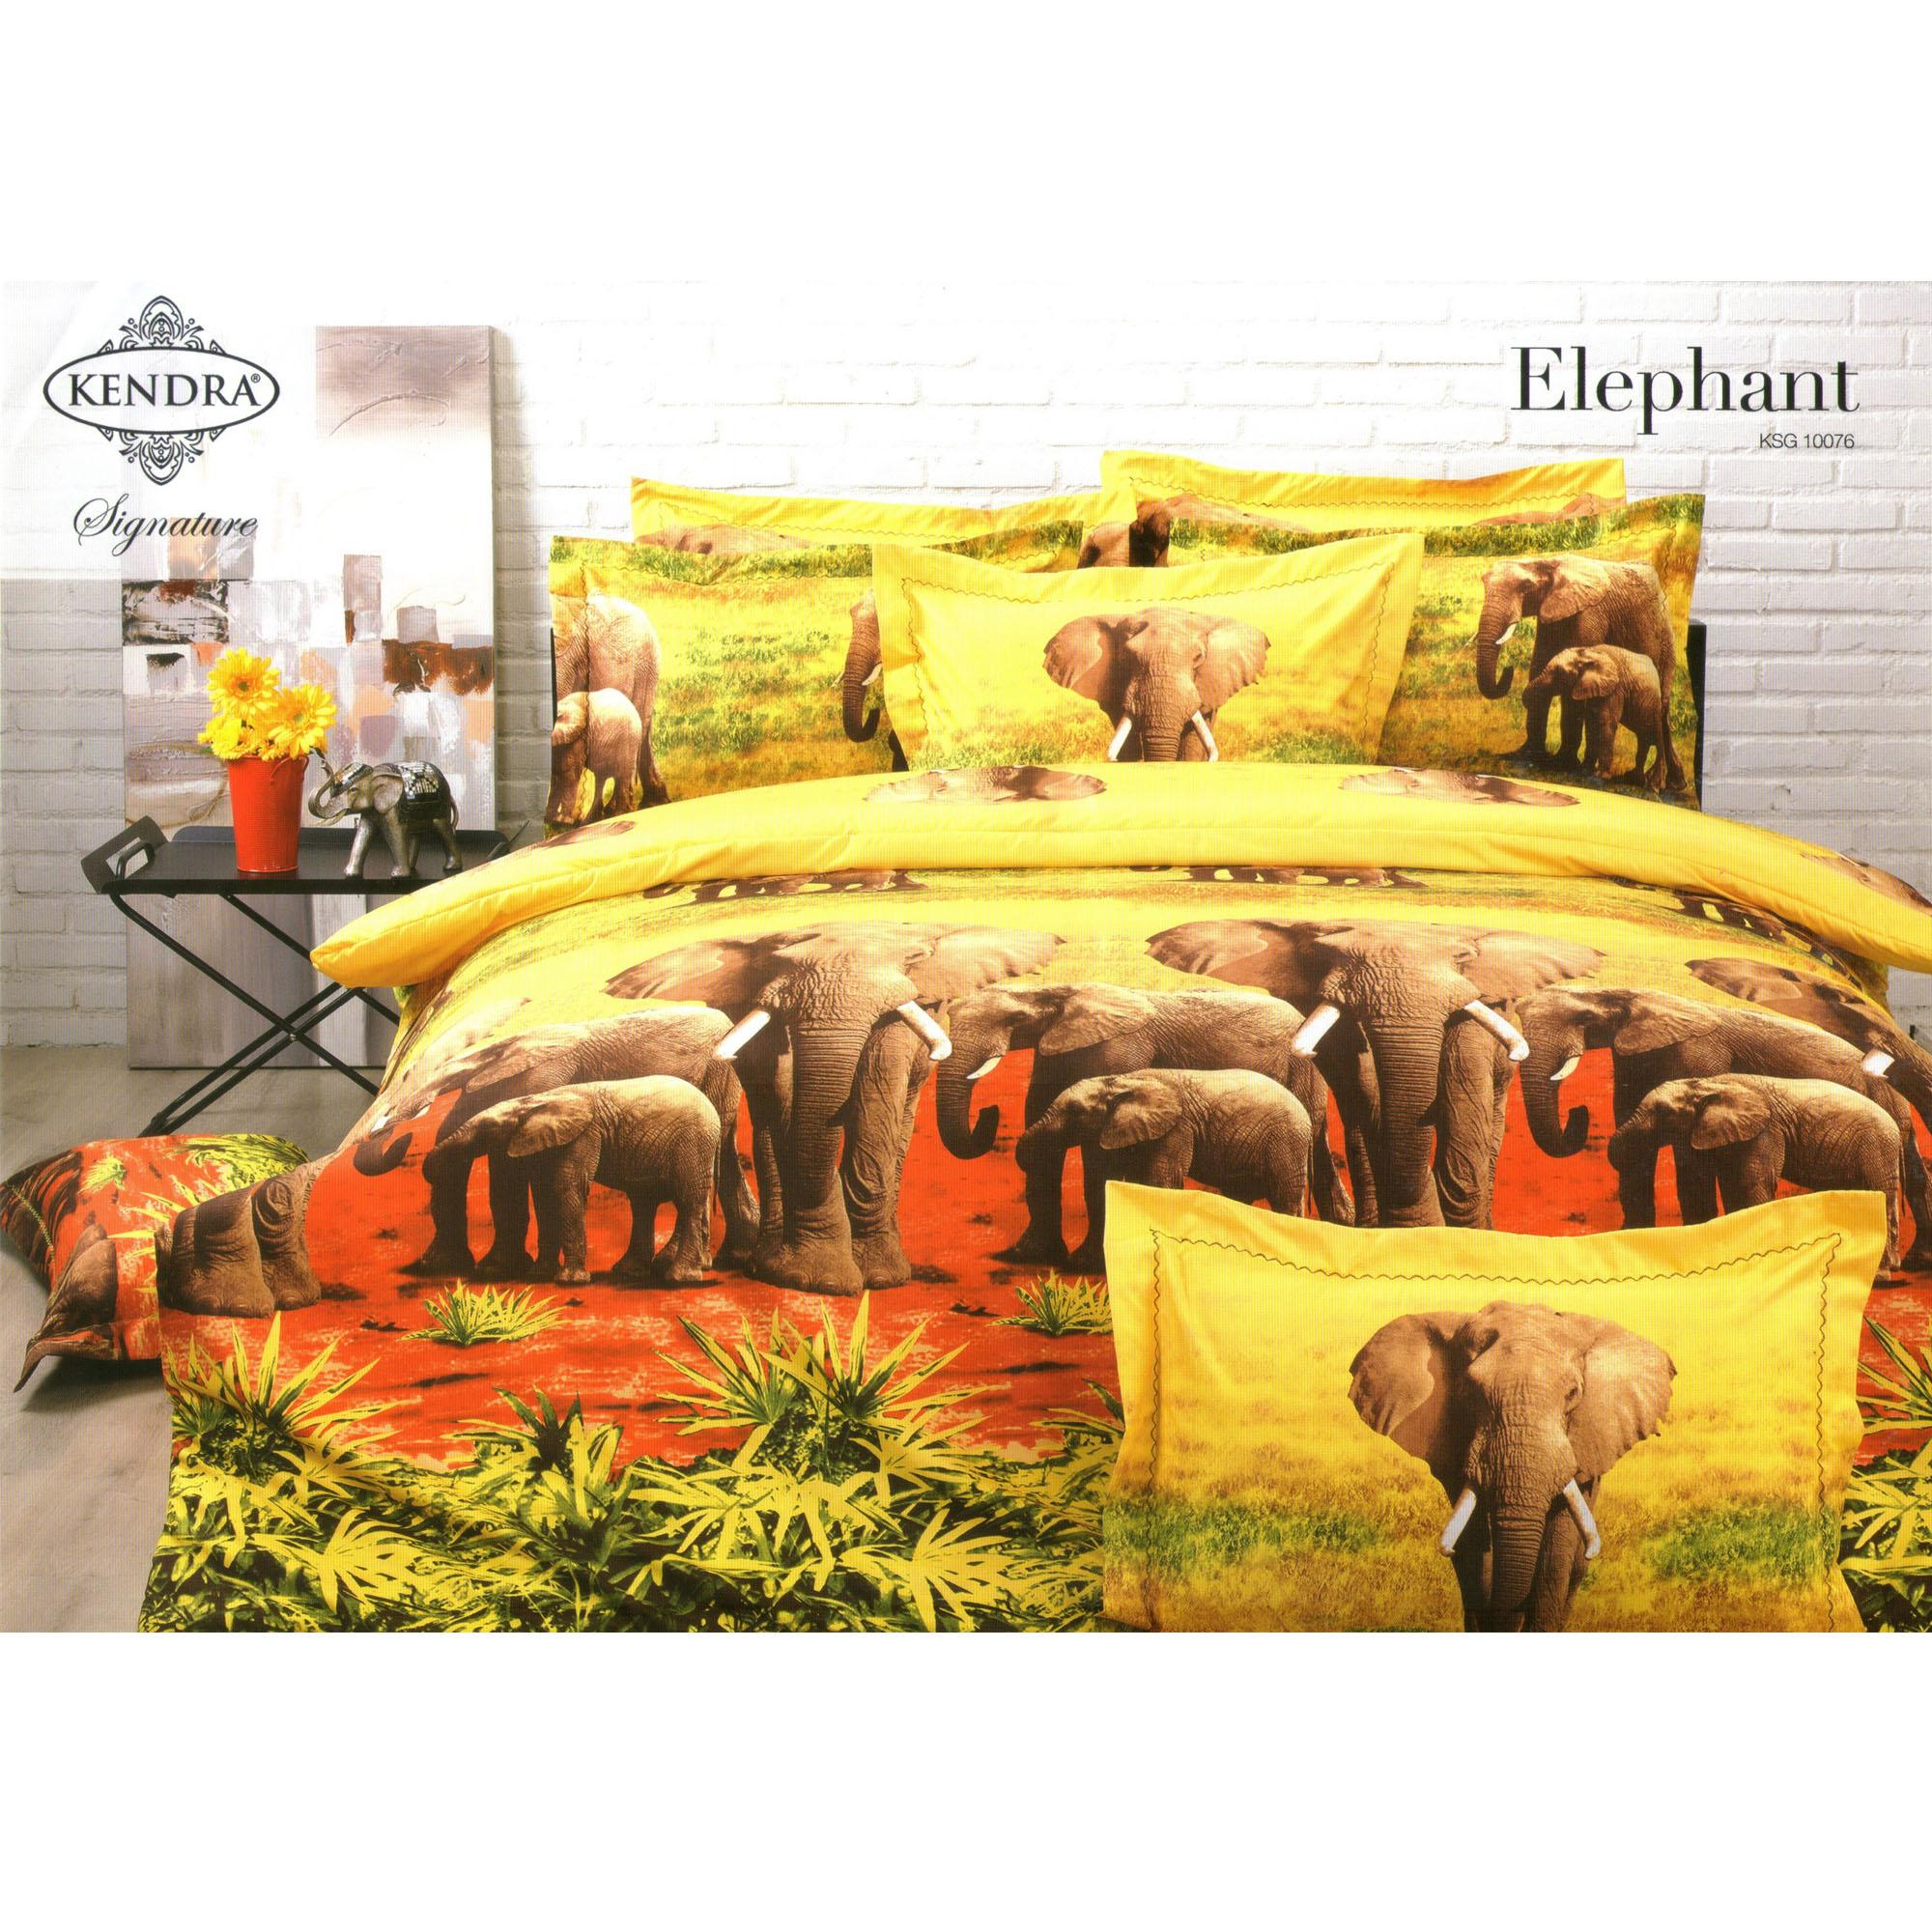 Buy Sell Cheapest Sprei Kendra Signature Best Quality Product Halus Sutra Set Elephant